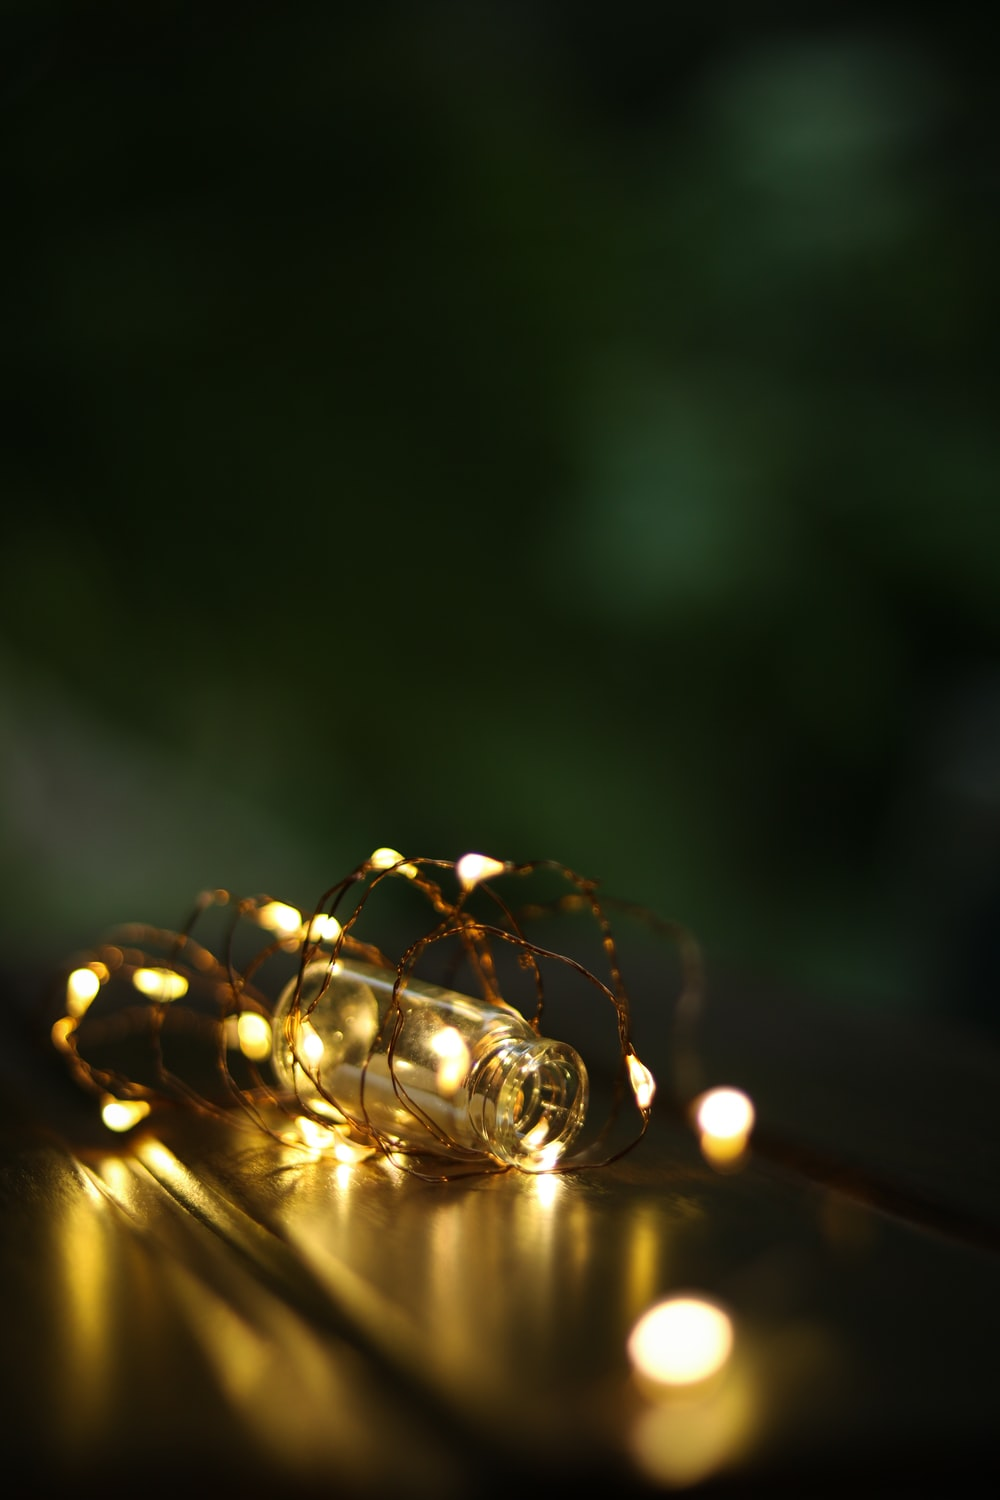 bokeh photography of yellow string lights and clear glass vial